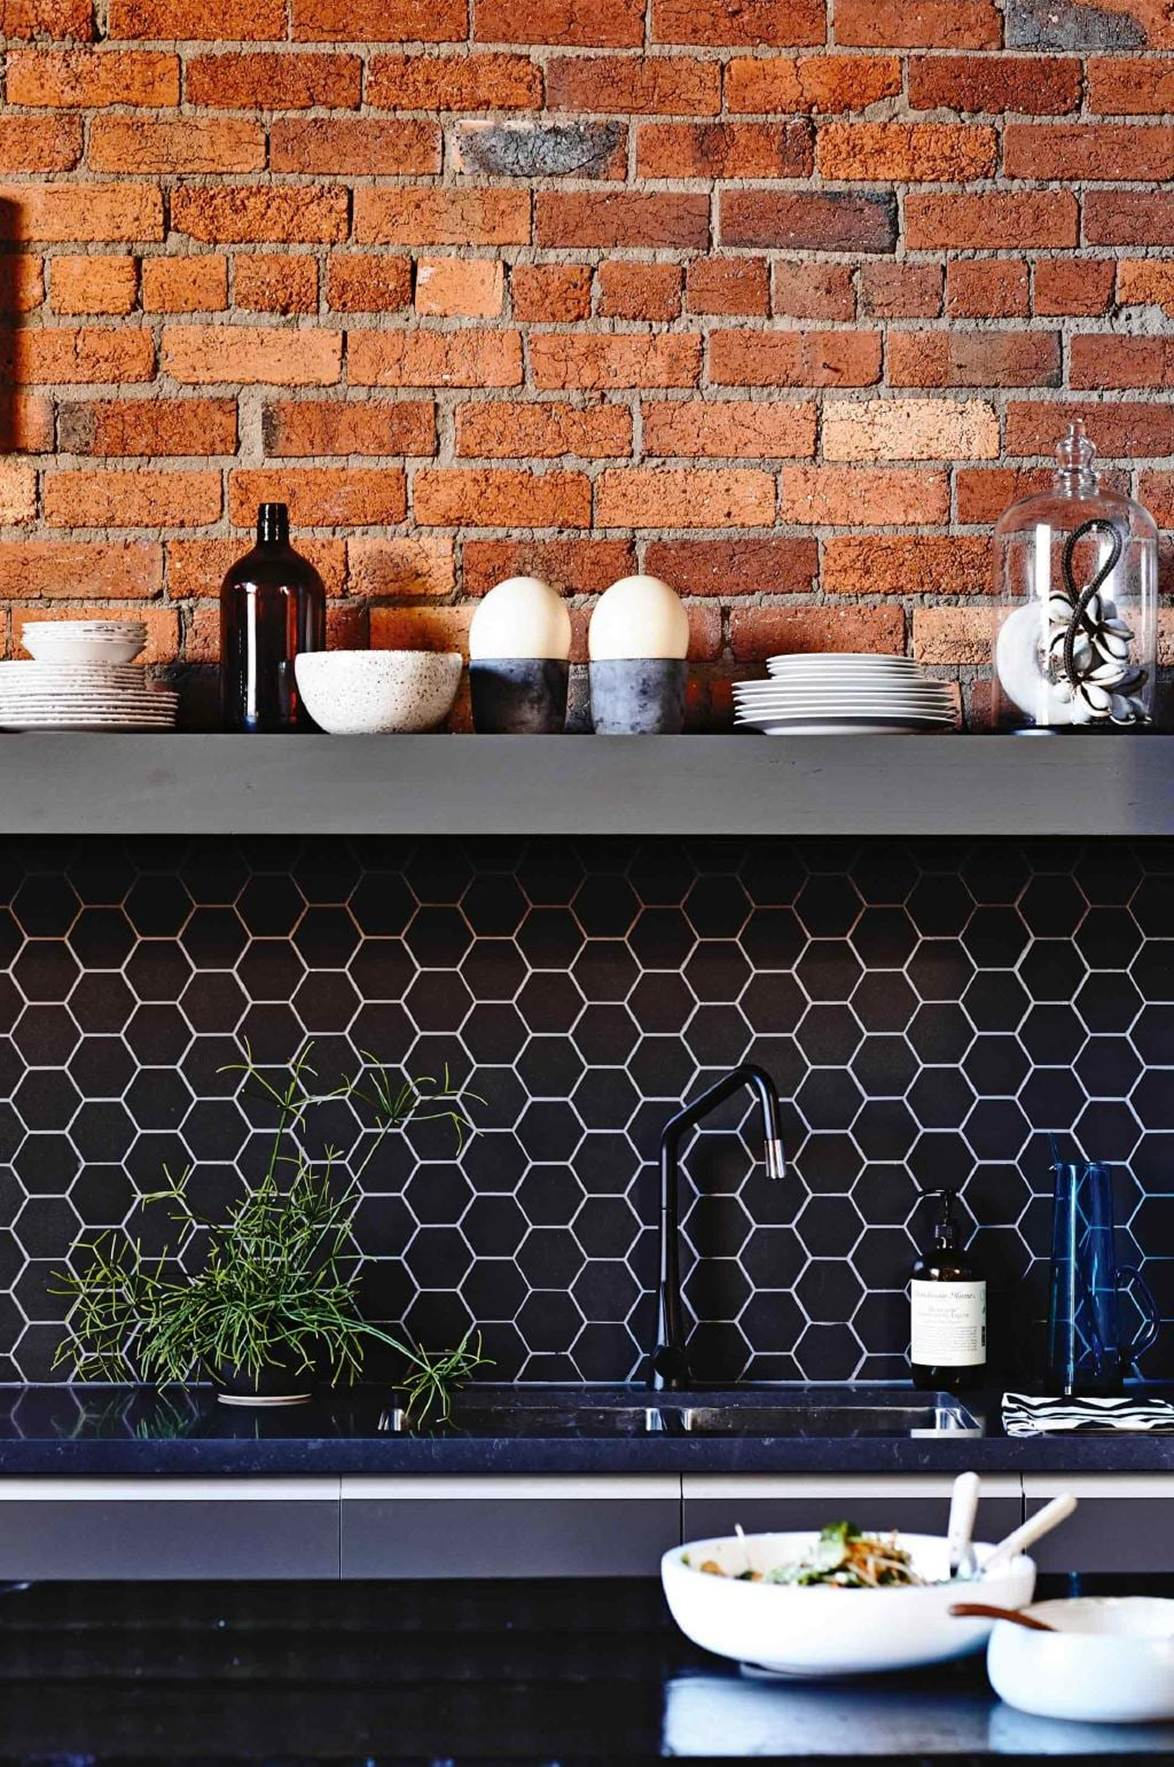 Industrial style kitchen with dark, dramatic tiles. Clever use of white grout to accent the honeycomb pattern. Styled by:  Rachel Vigor